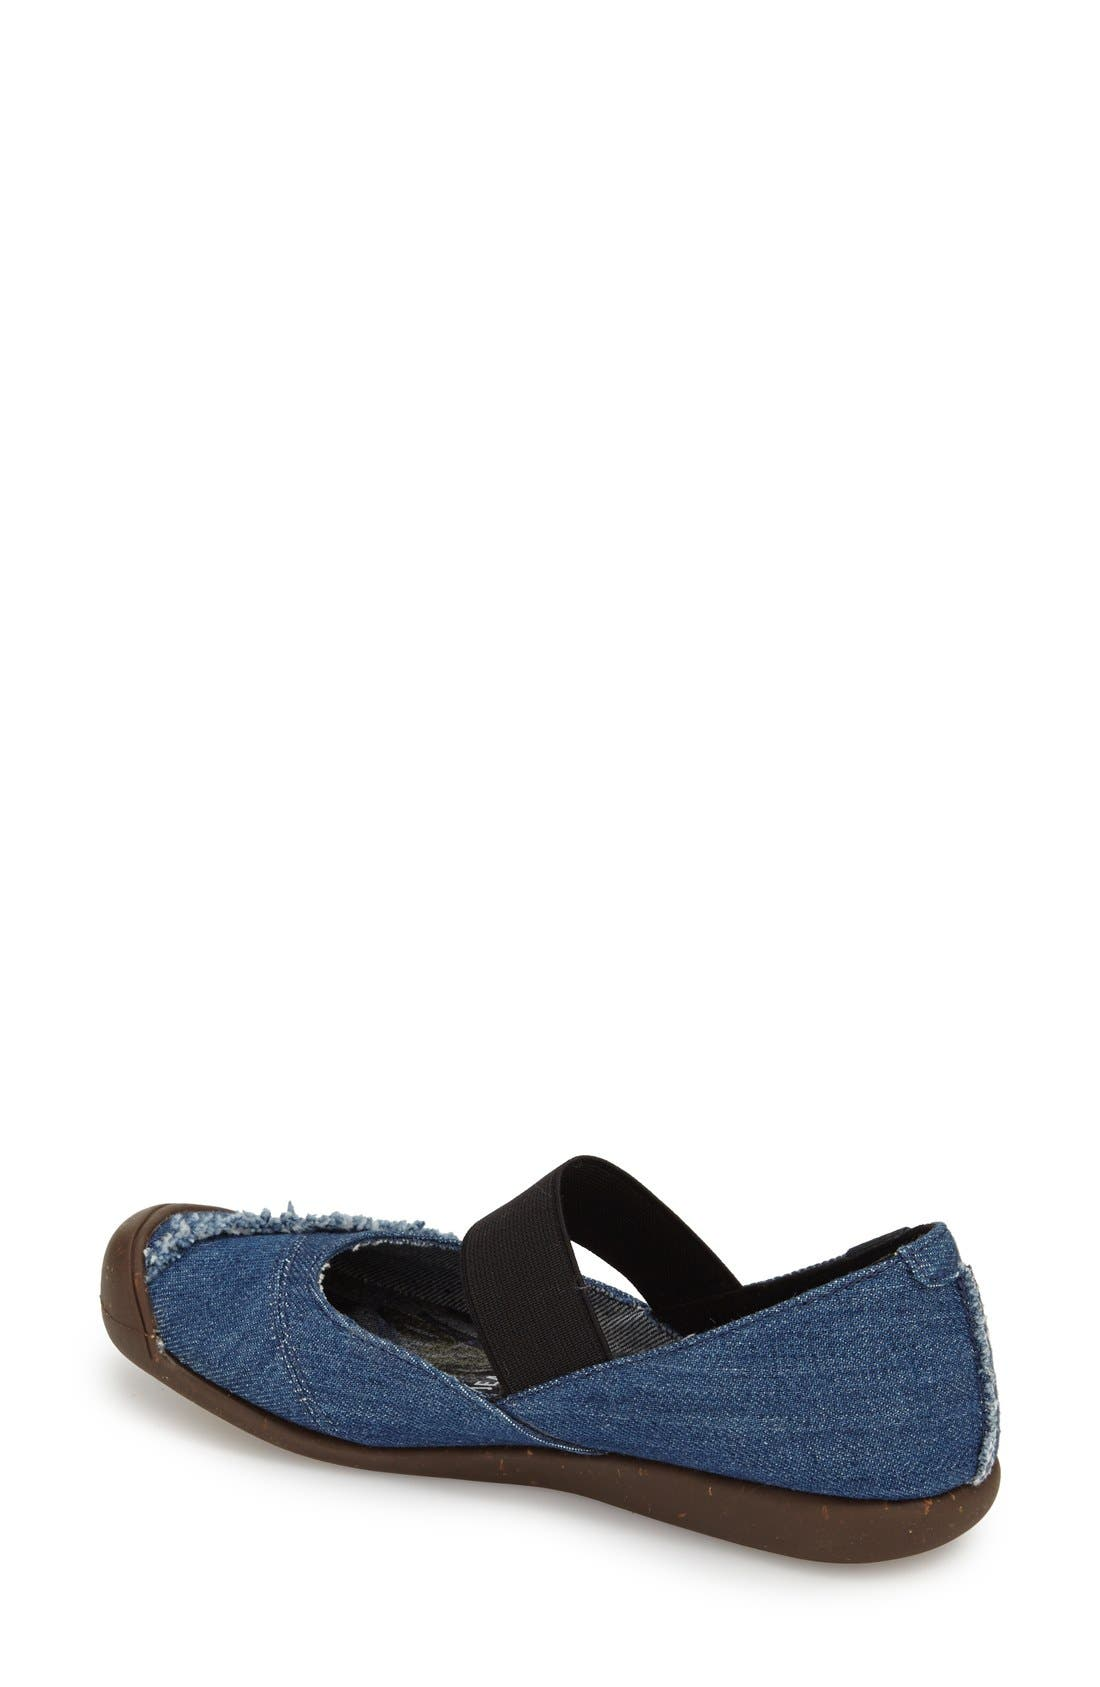 Alternate Image 2  - Keen 'Good Jeans' Mary Jane Flat (Women)